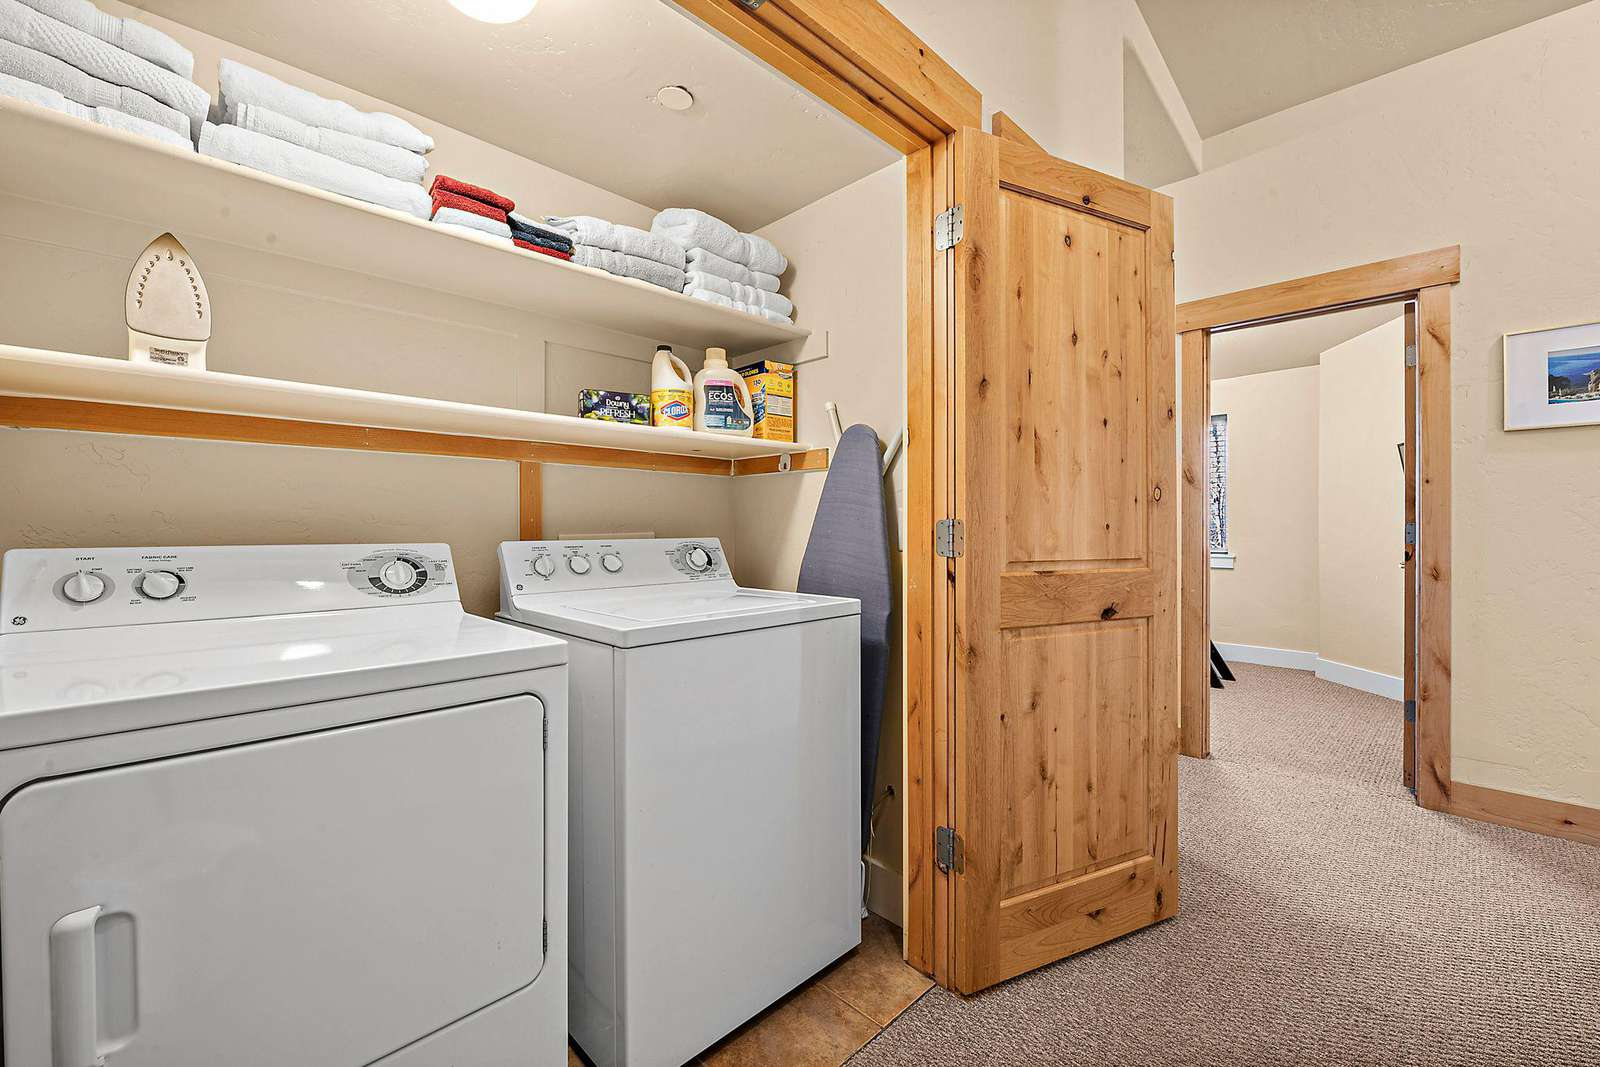 Washer and dryer available in property